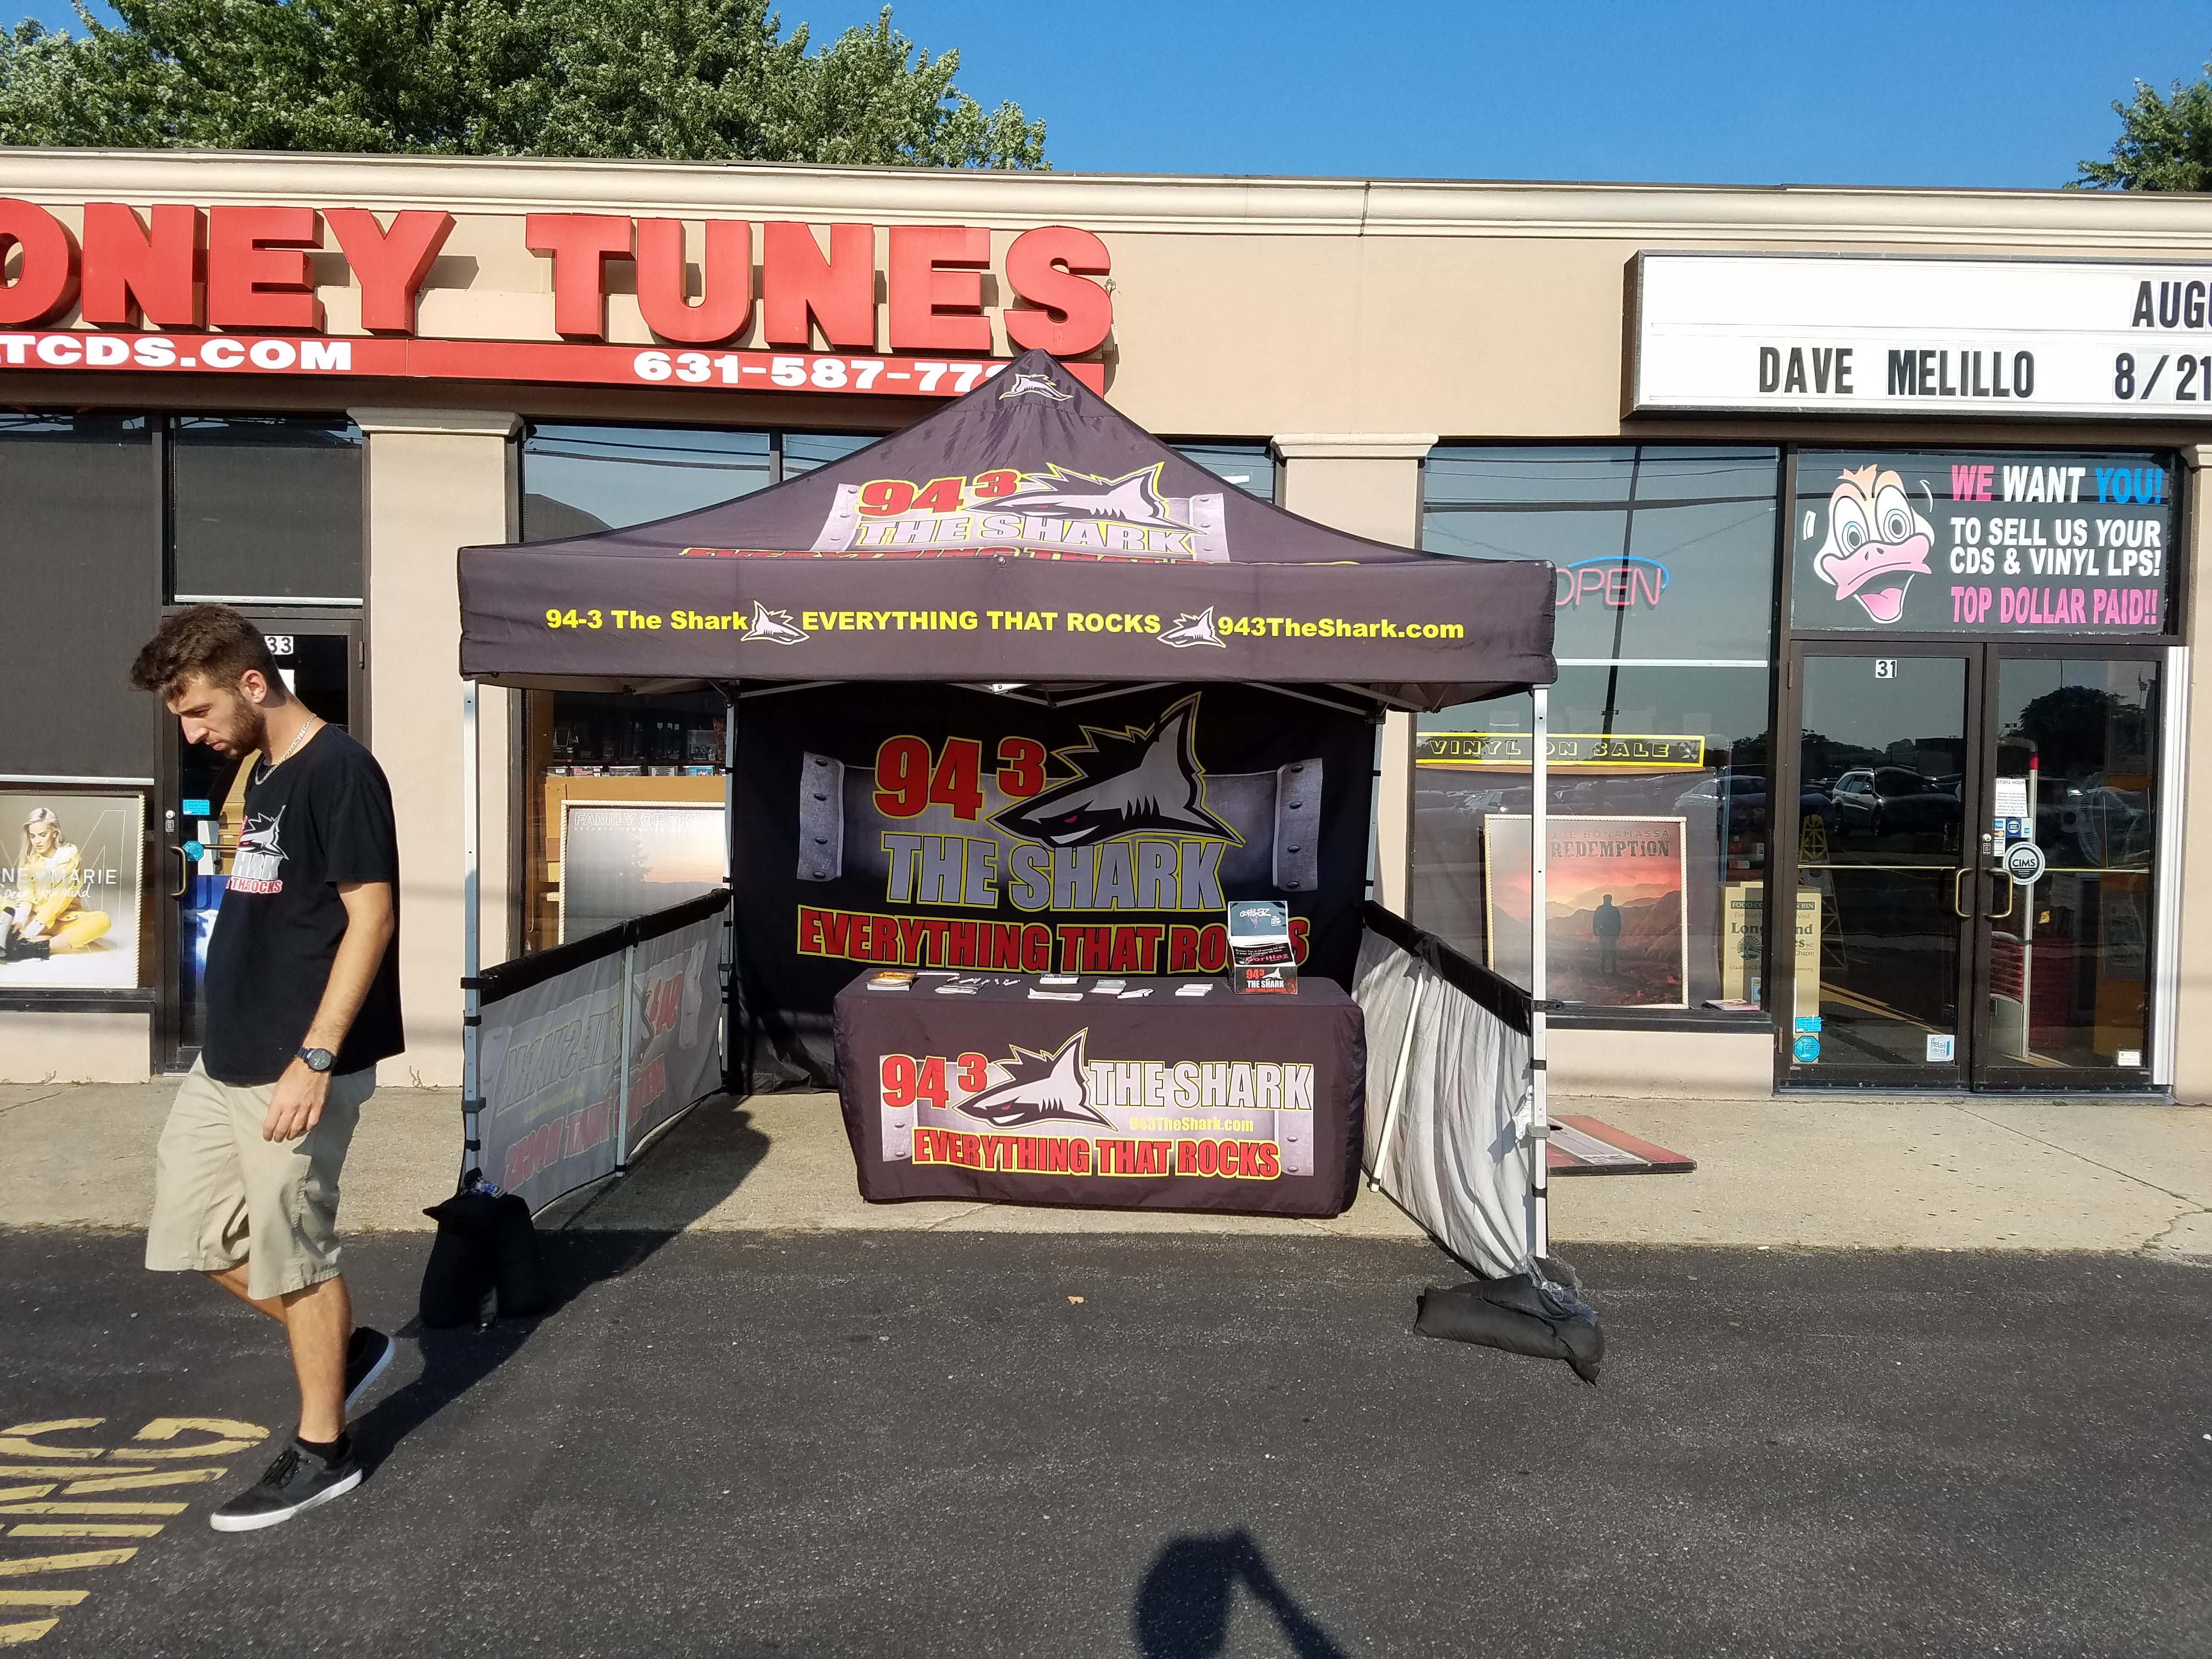 94.3 The Shark at Looney Tunes with Dee Snyder